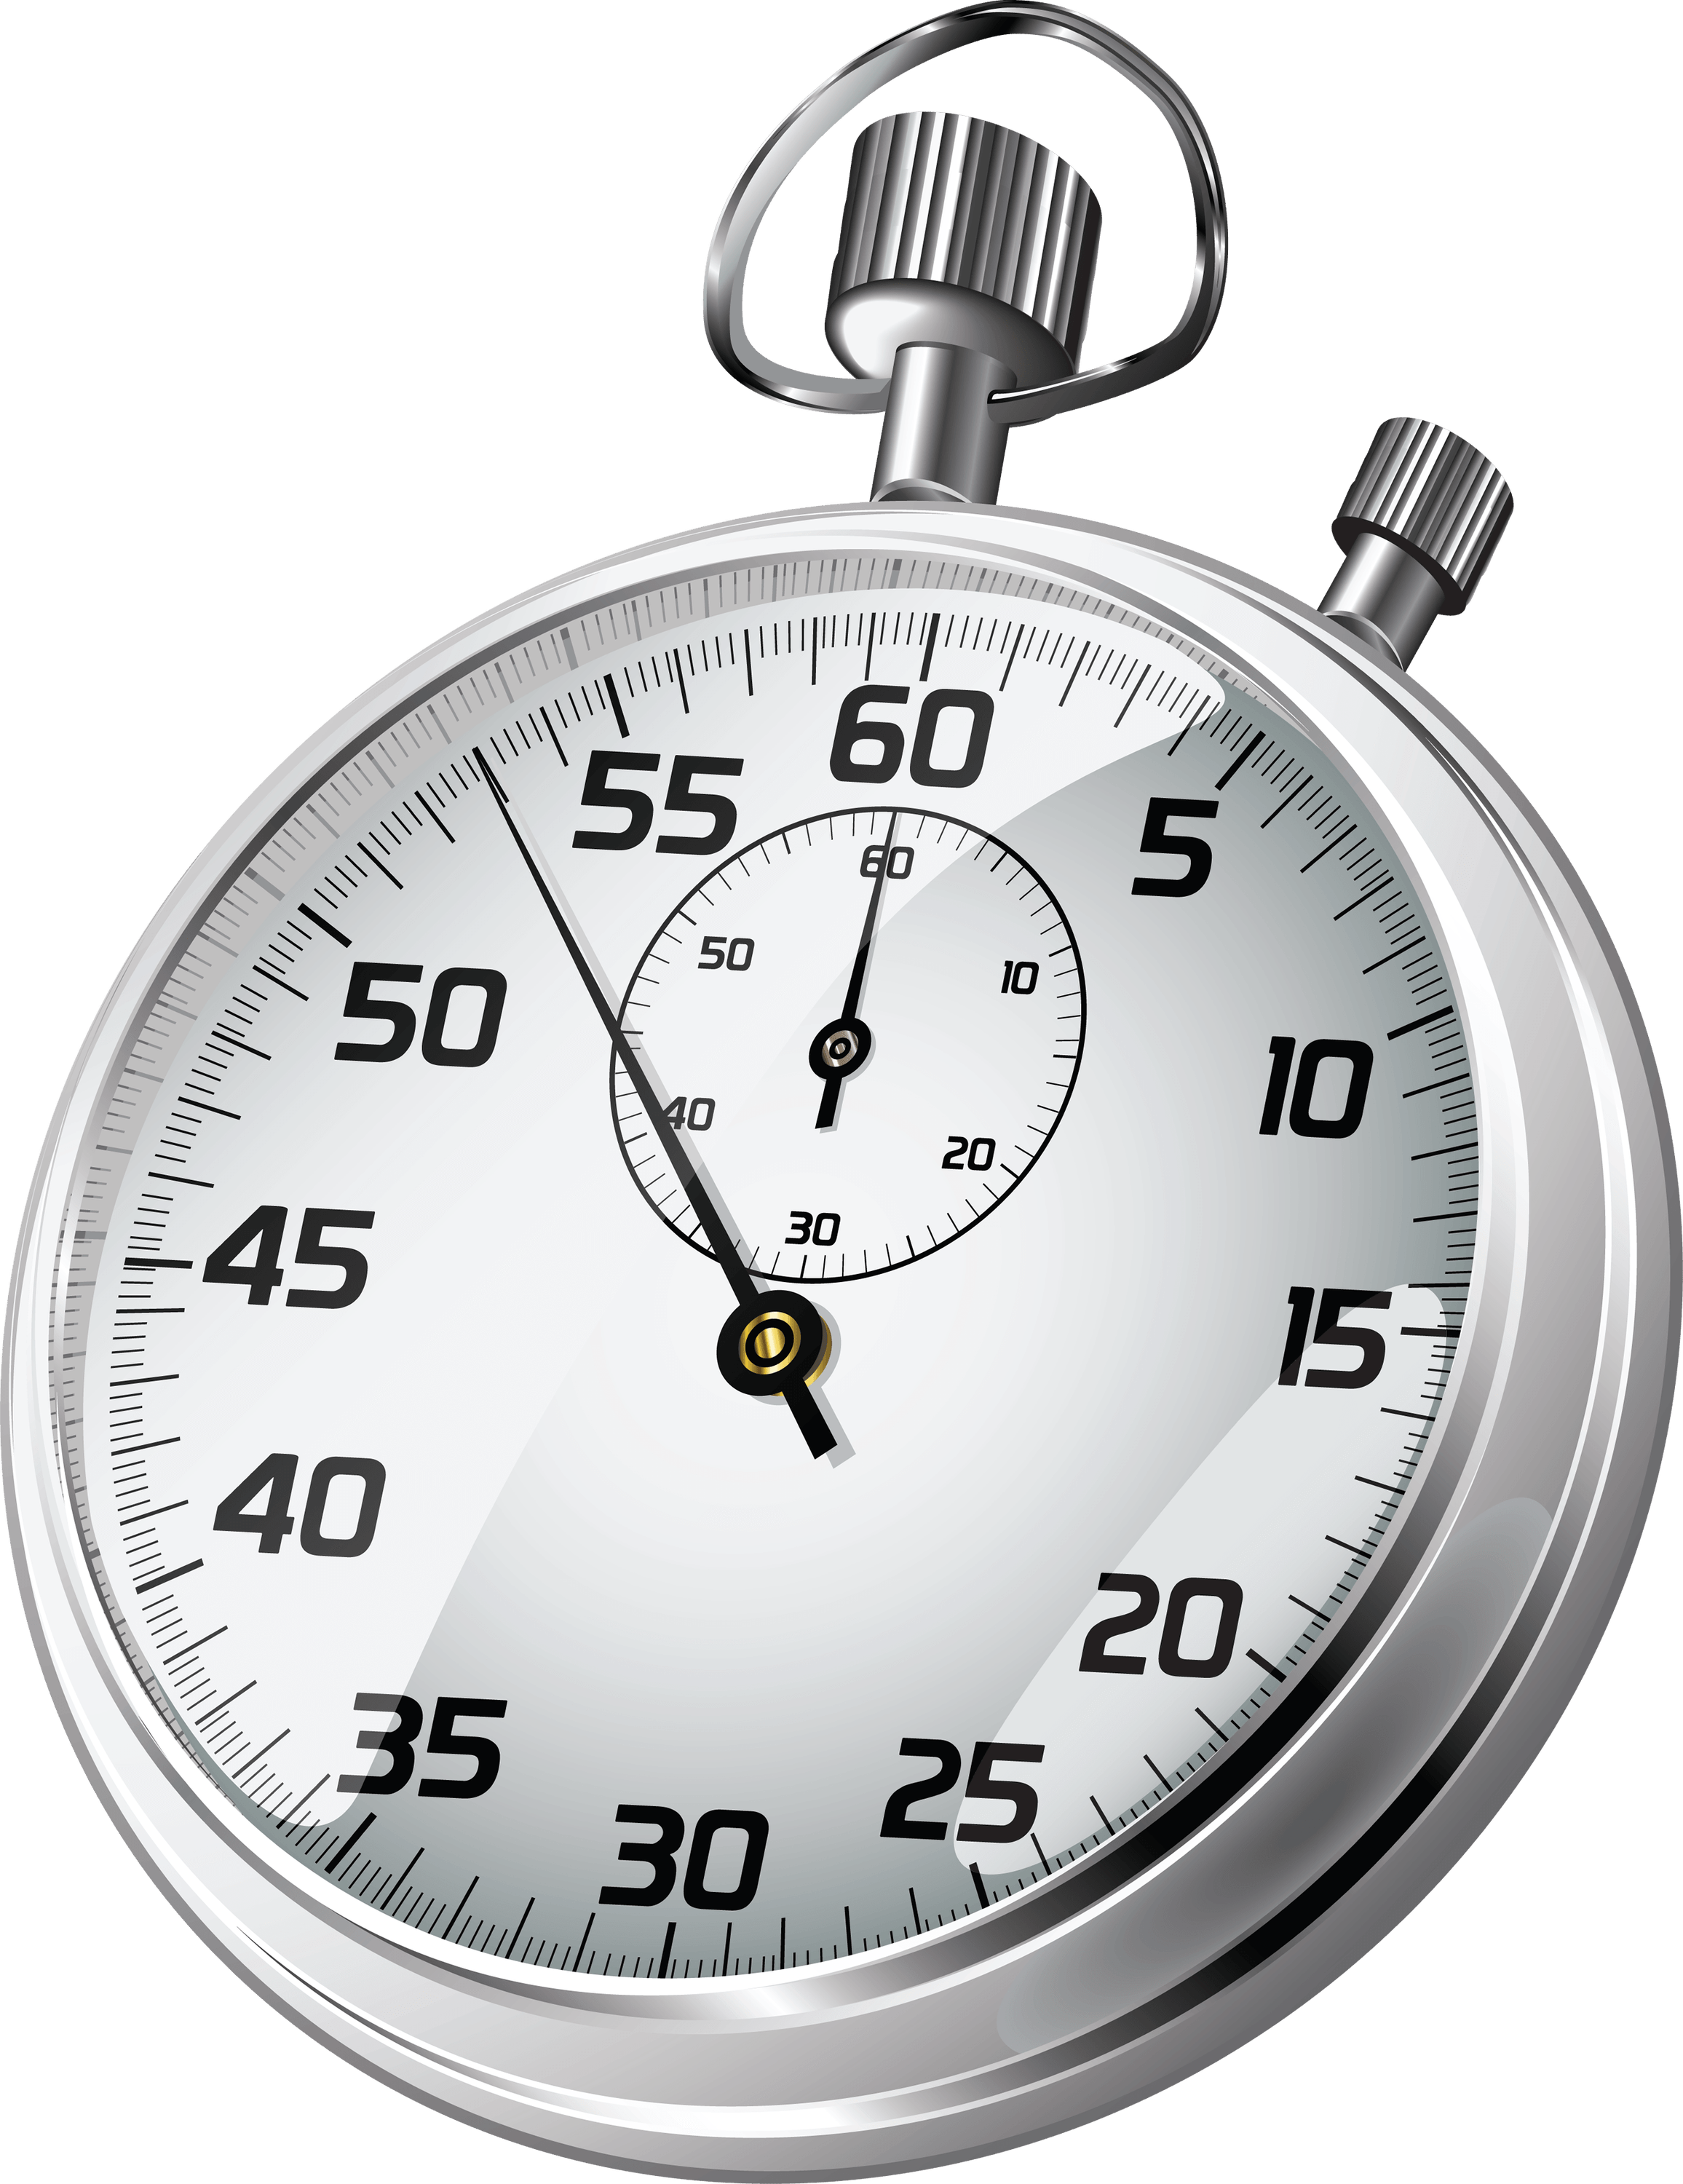 Transparent stopwatch. Sideview clock png stickpng